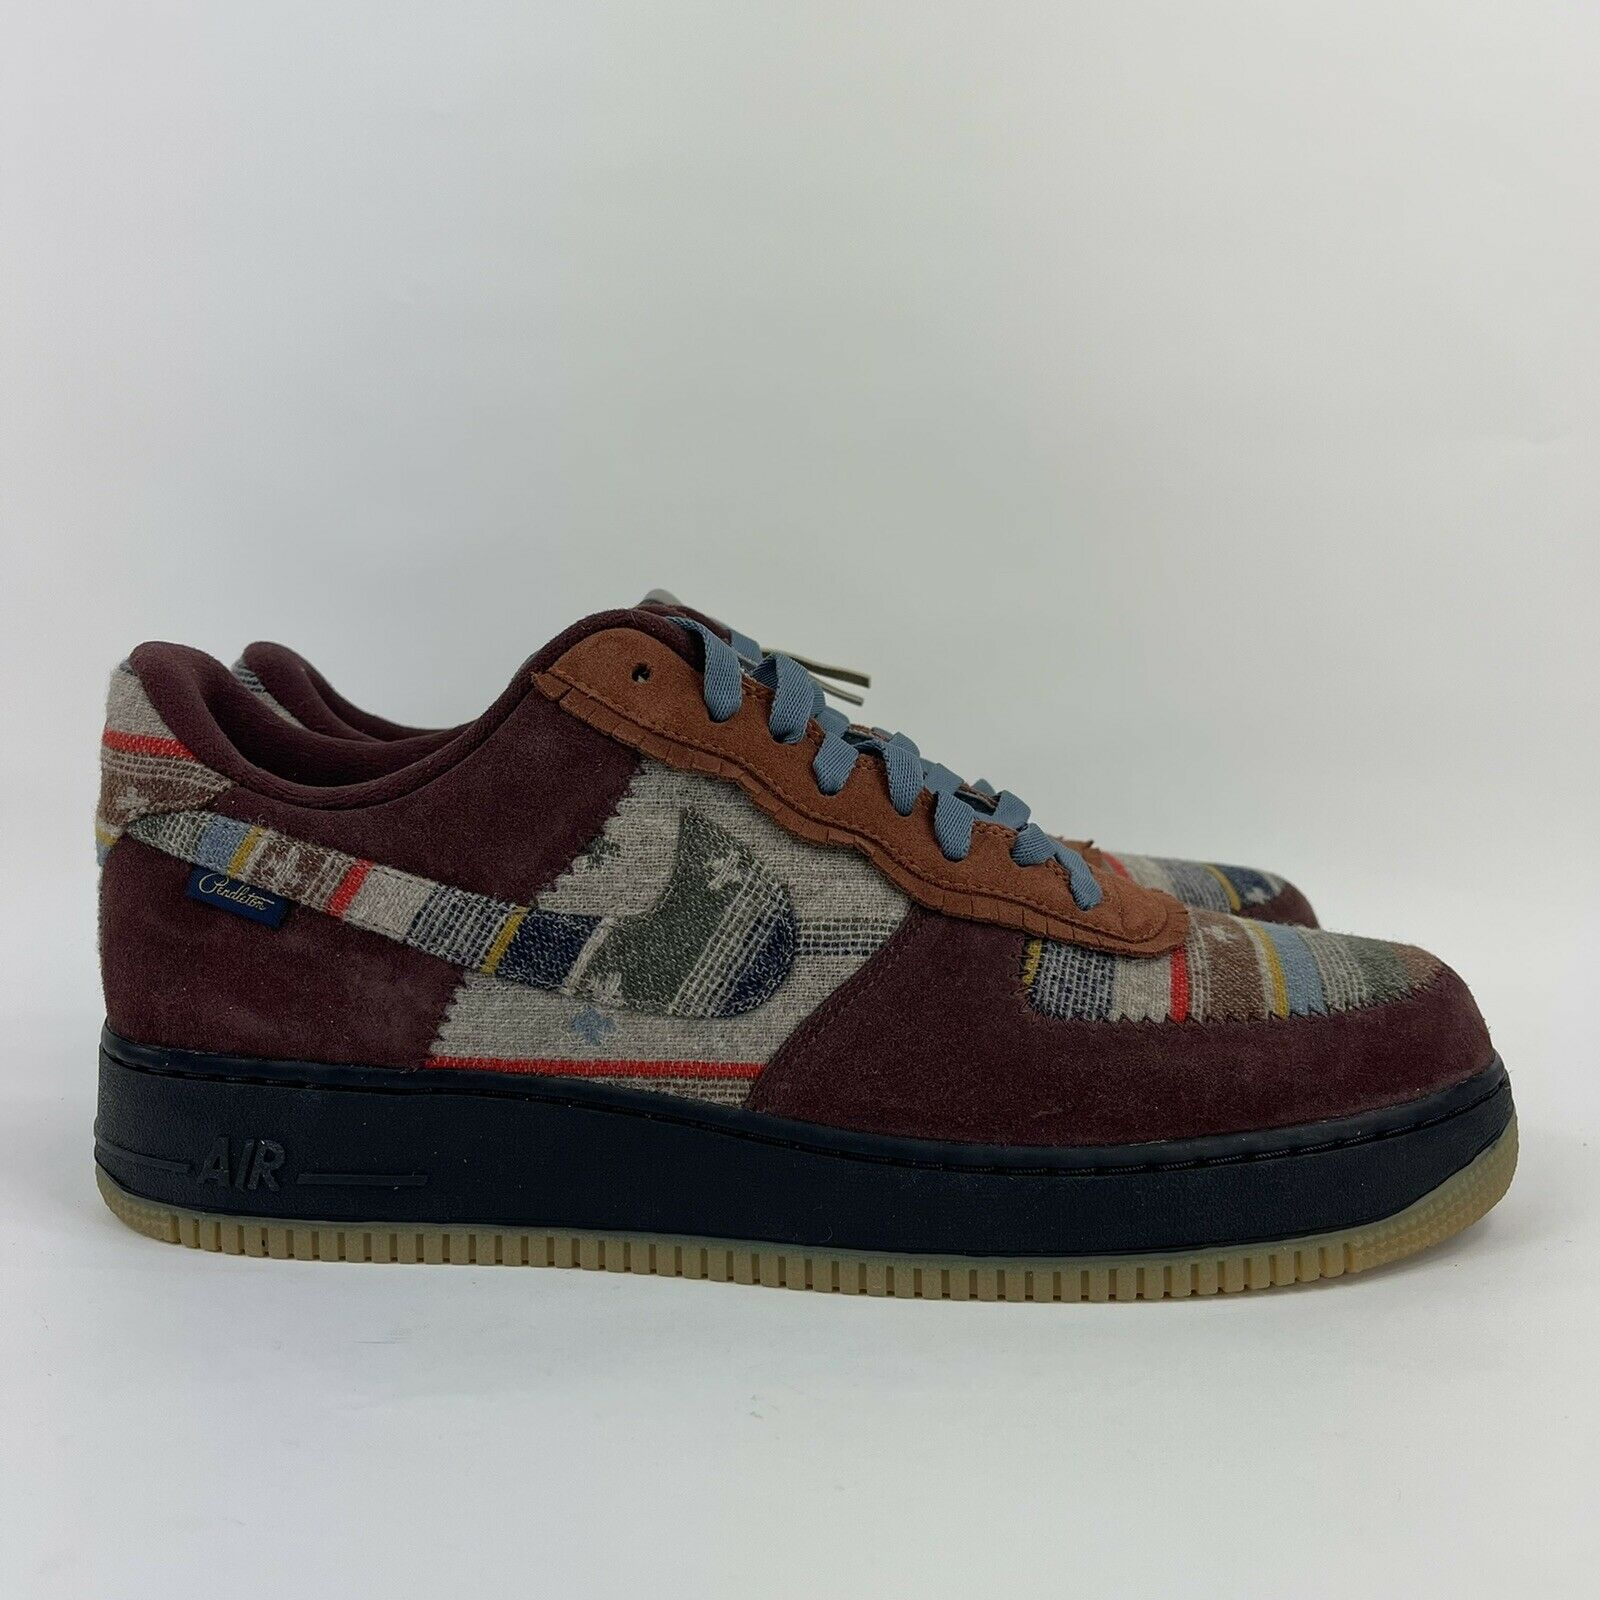 Nike Air Force 1 Low Pendleton Mens Size 14 Nike By You CK5075 993 No Lid